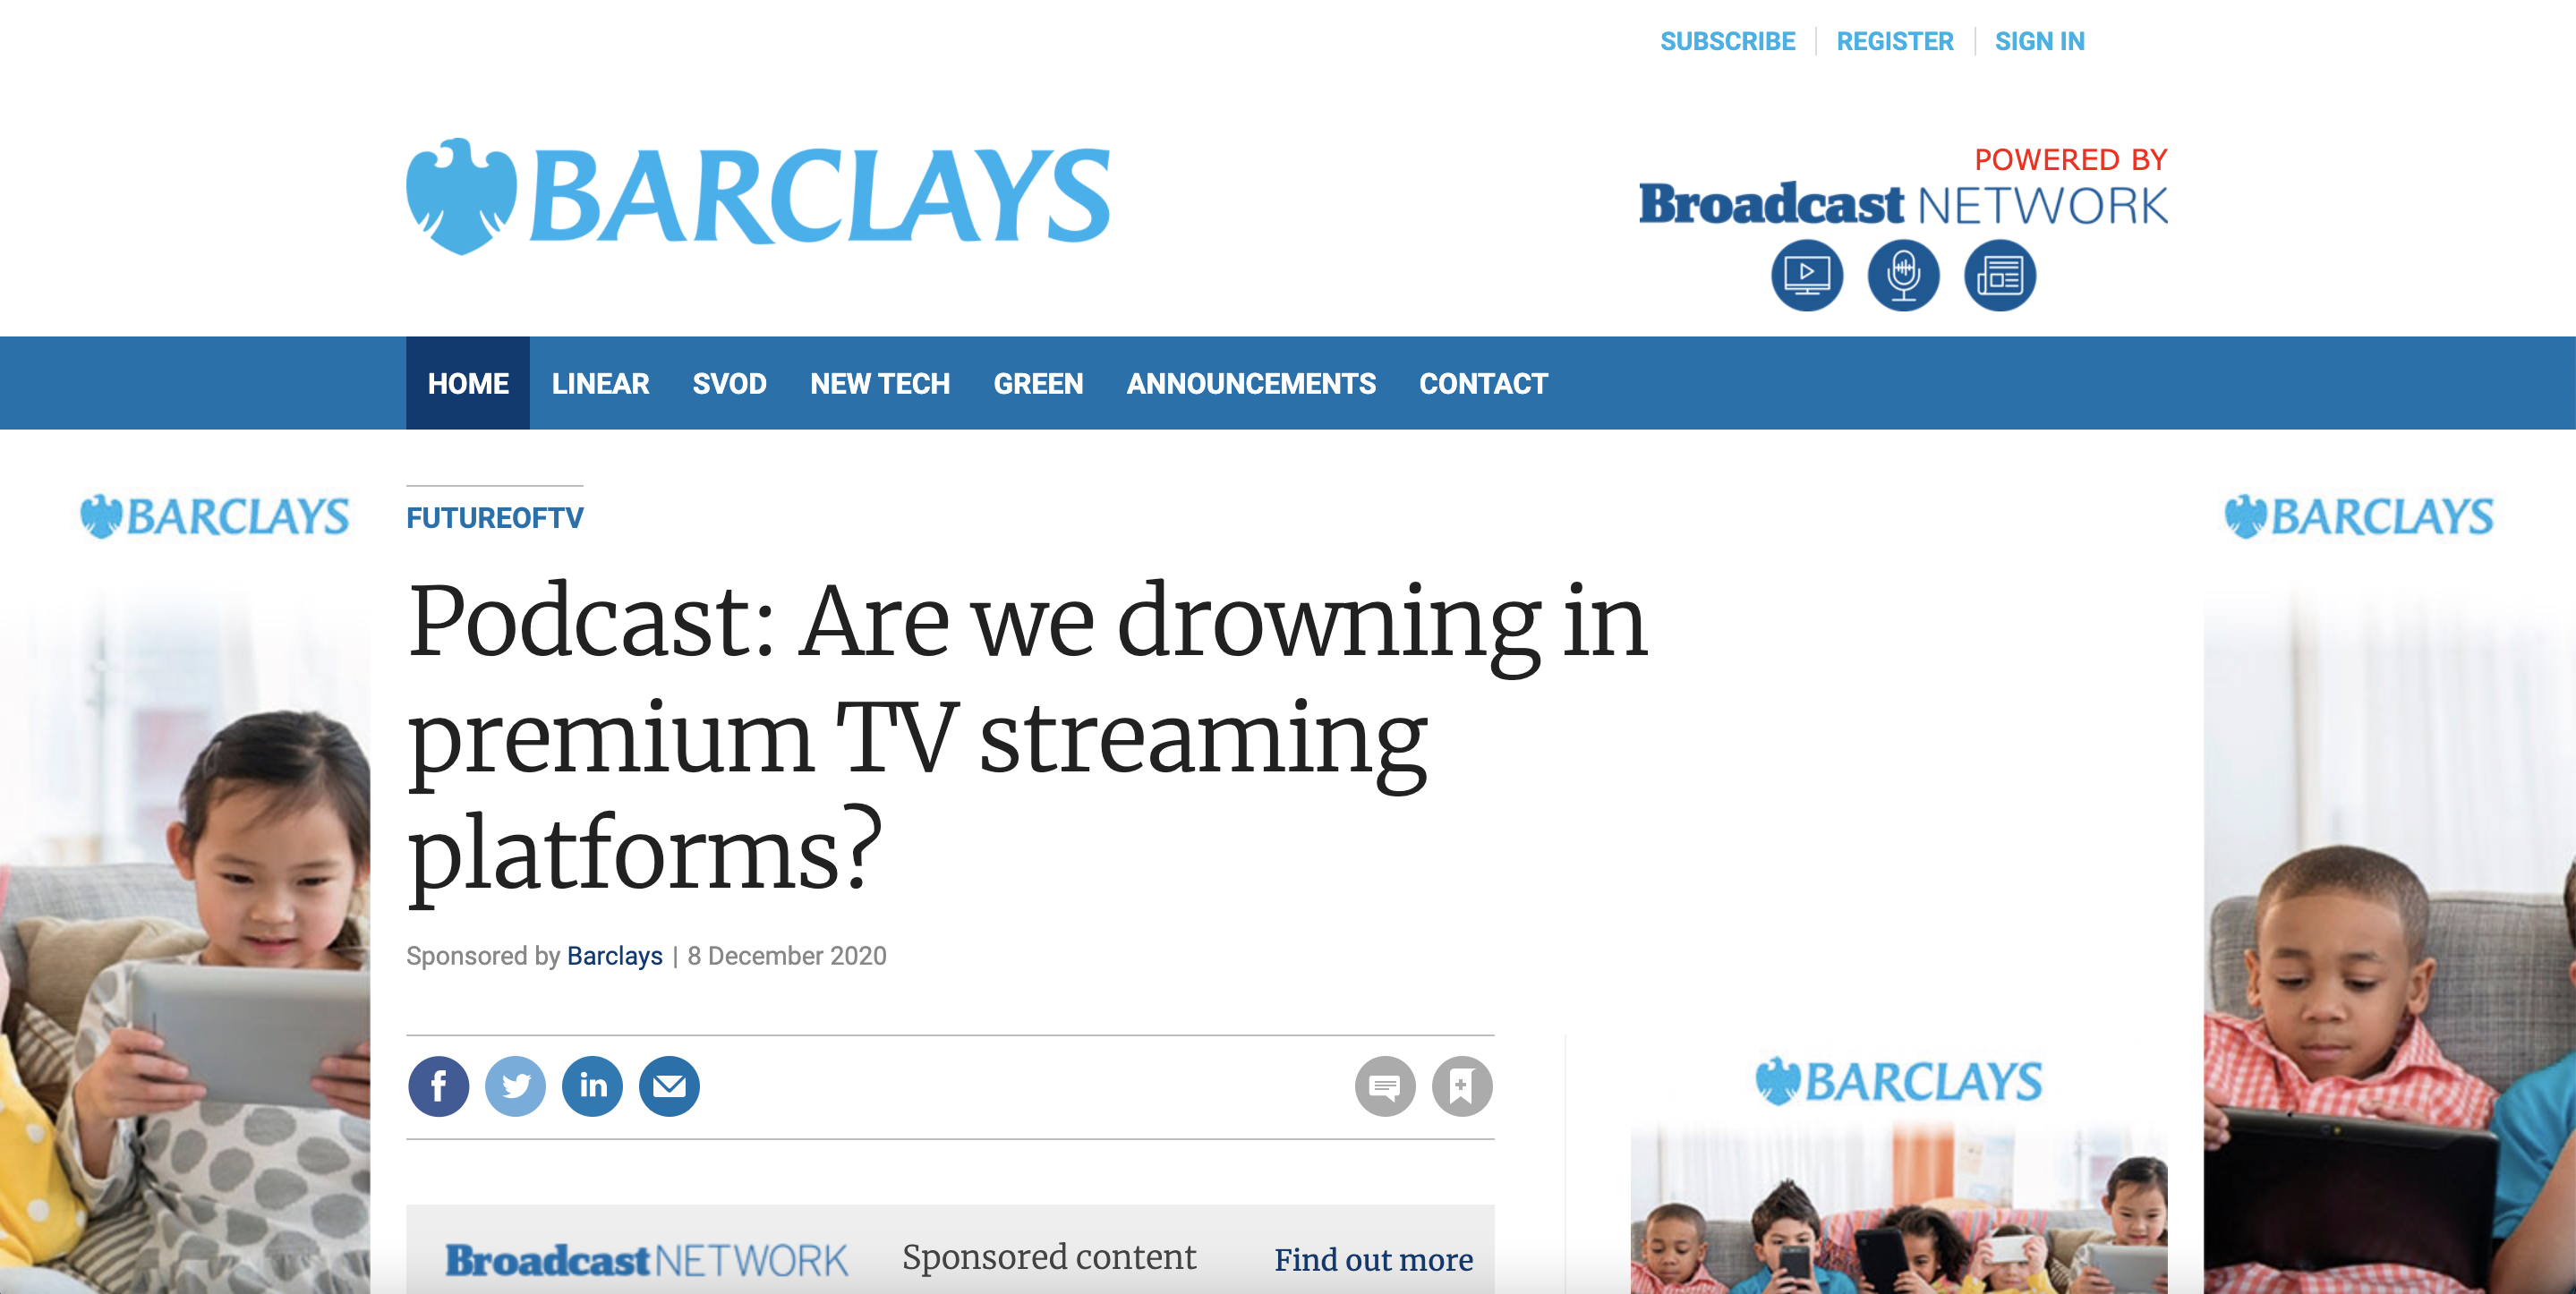 Branded content by Barclays with Broadcast network